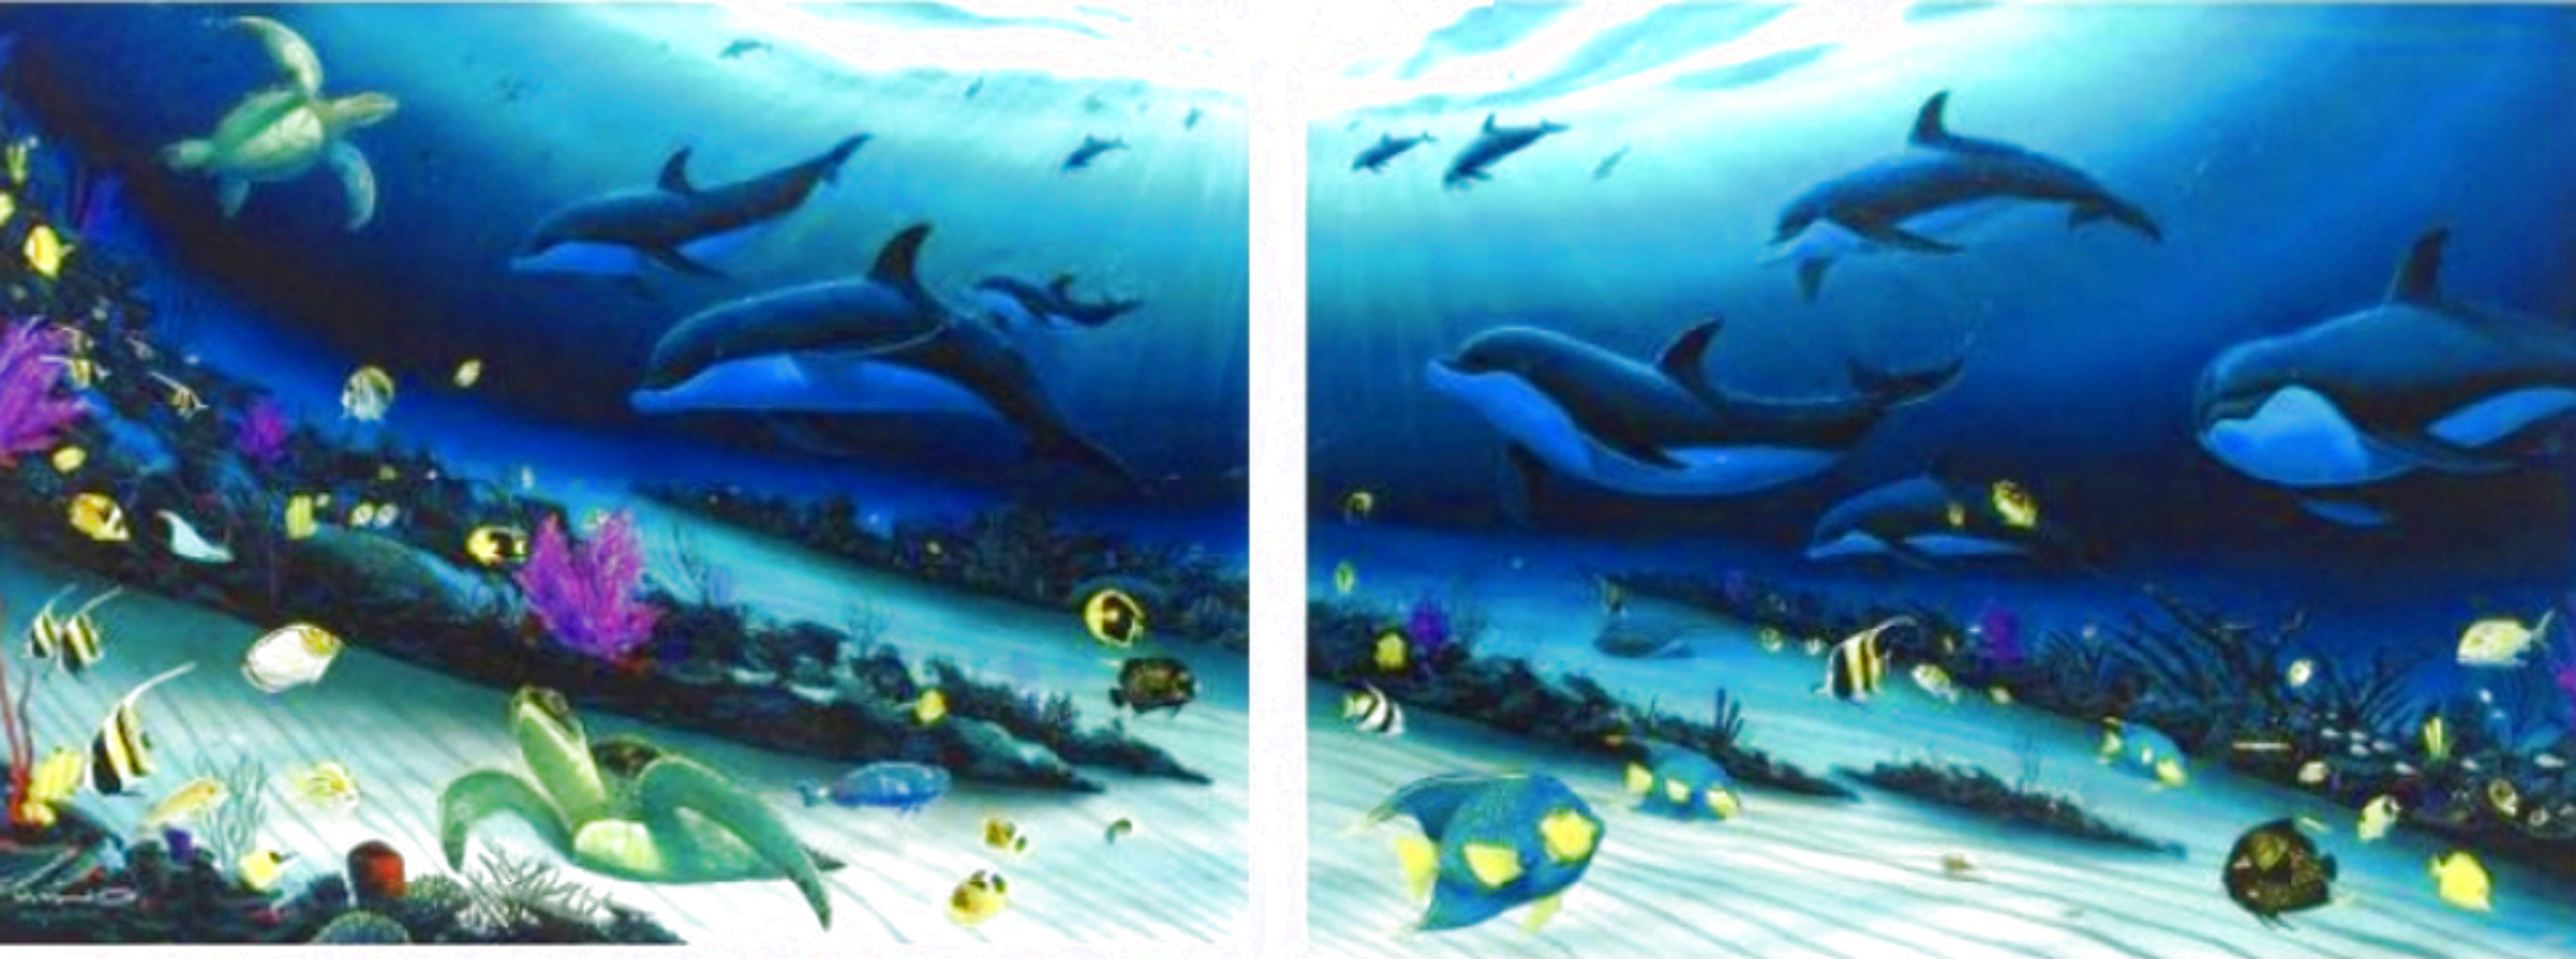 Radiant Reef  Diptych 2001 70x52 Super Huge Limited Edition Print by Robert Wyland